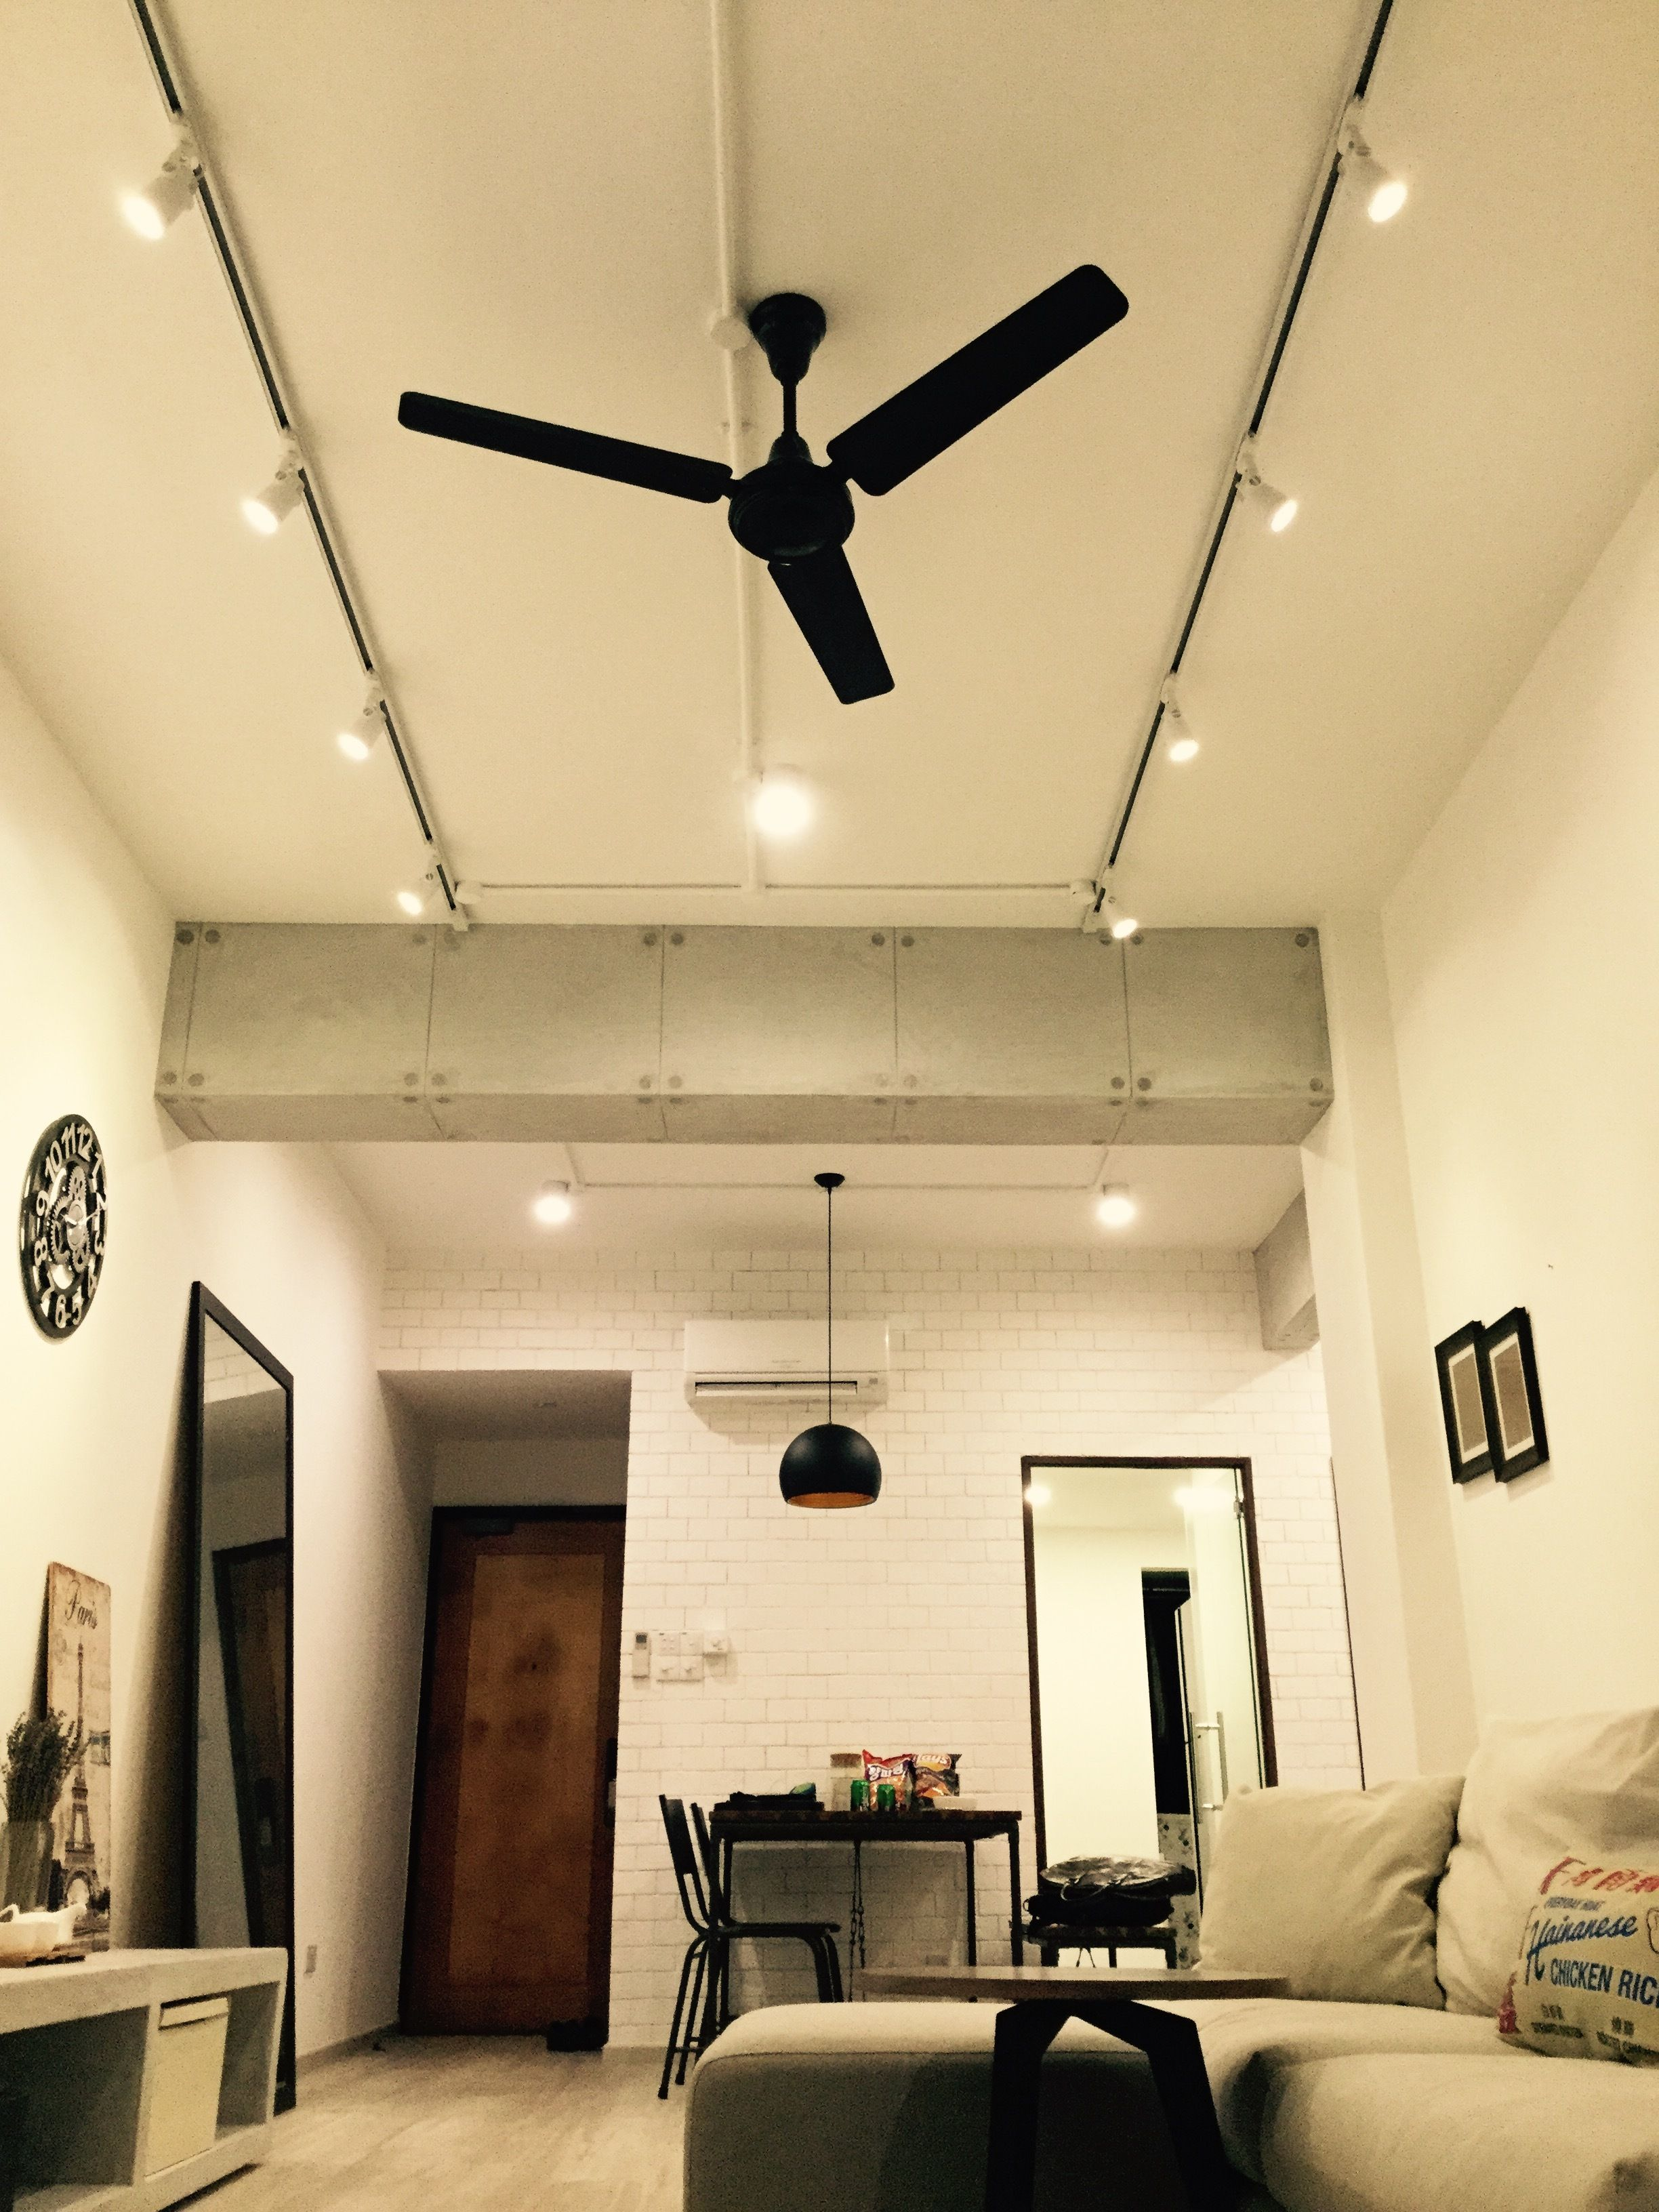 Living Room Ceiling Fan Ideas Living Area Shot From The Floor Concrete Finished Beams